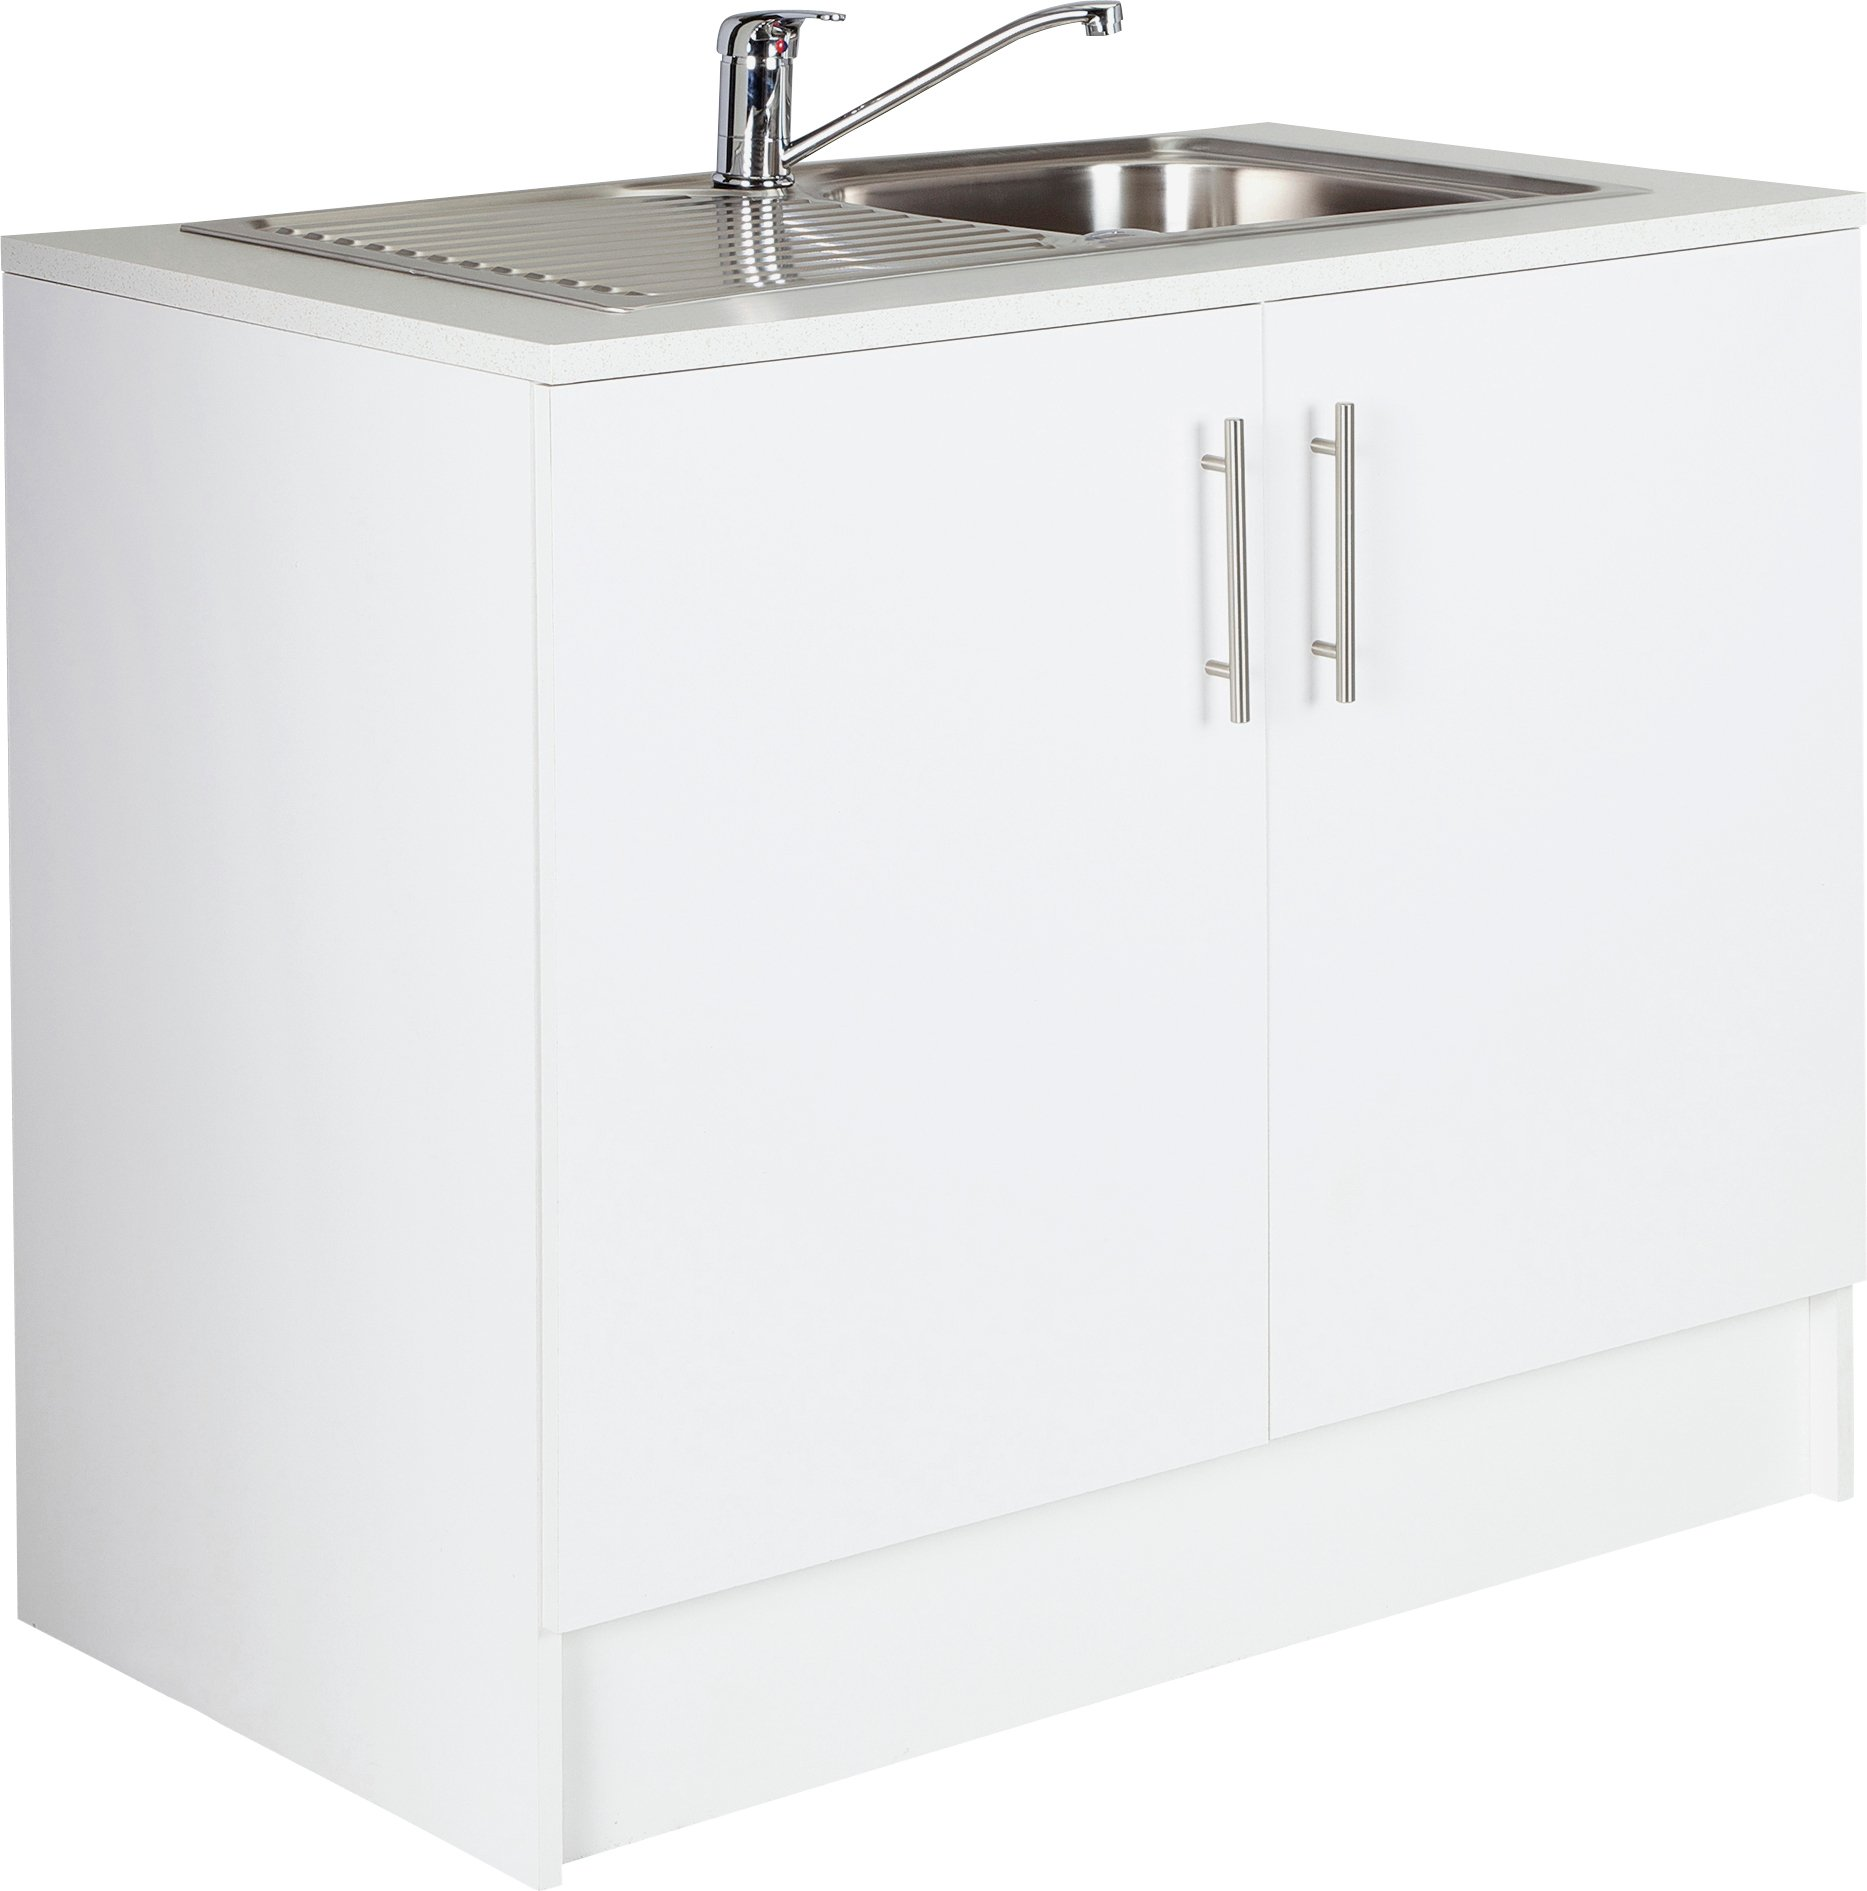 stainless steel kitchen sink unit buy athina 1000mm stainless steel kitchen sink unit 8272